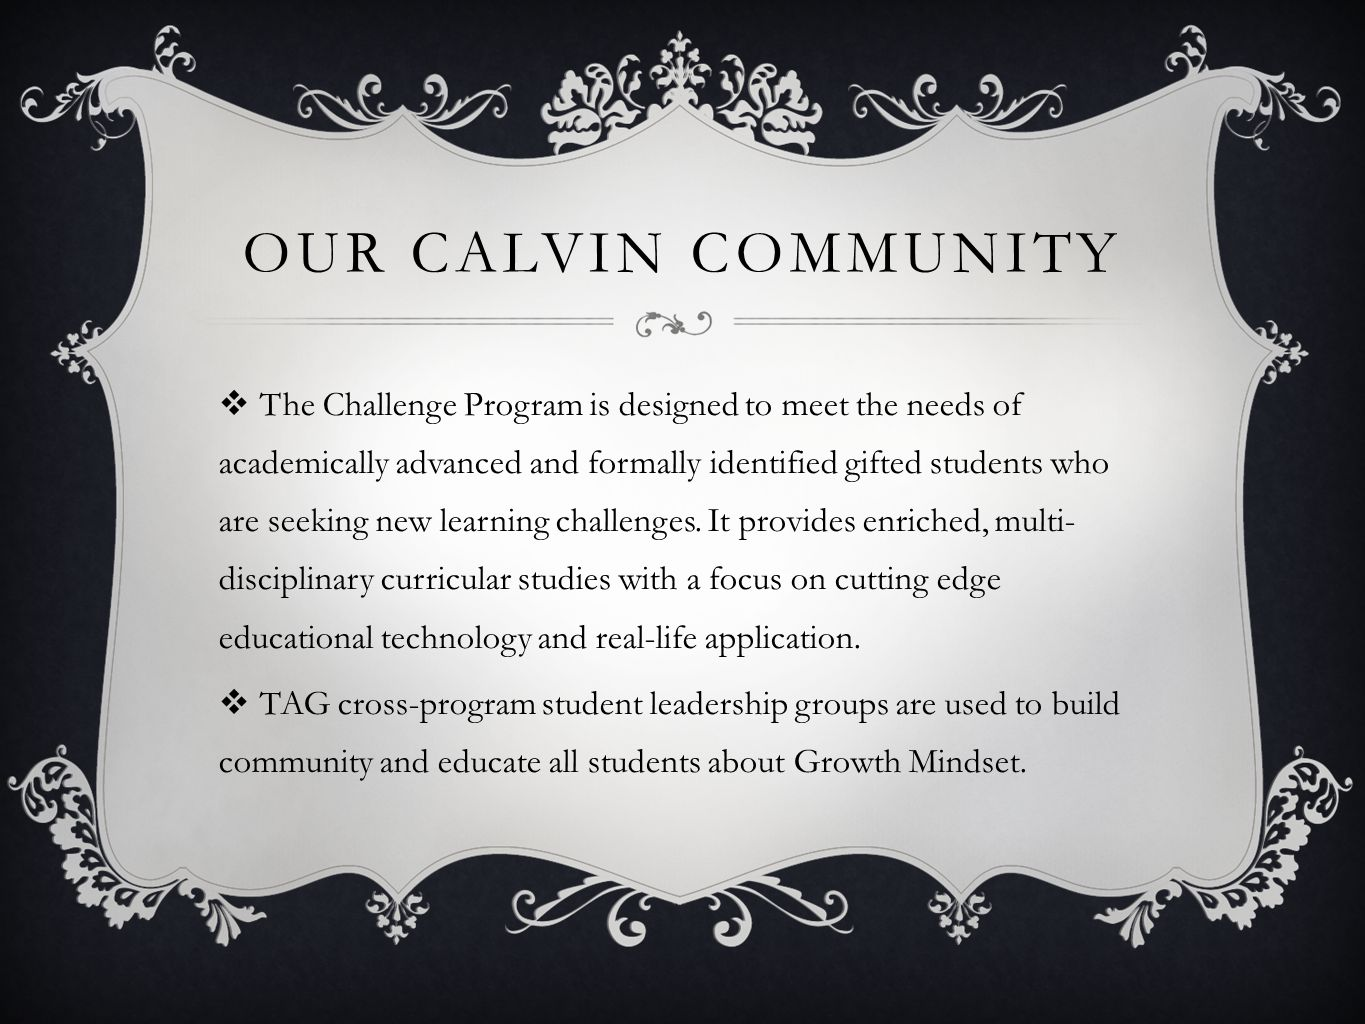 Our Calvin Community